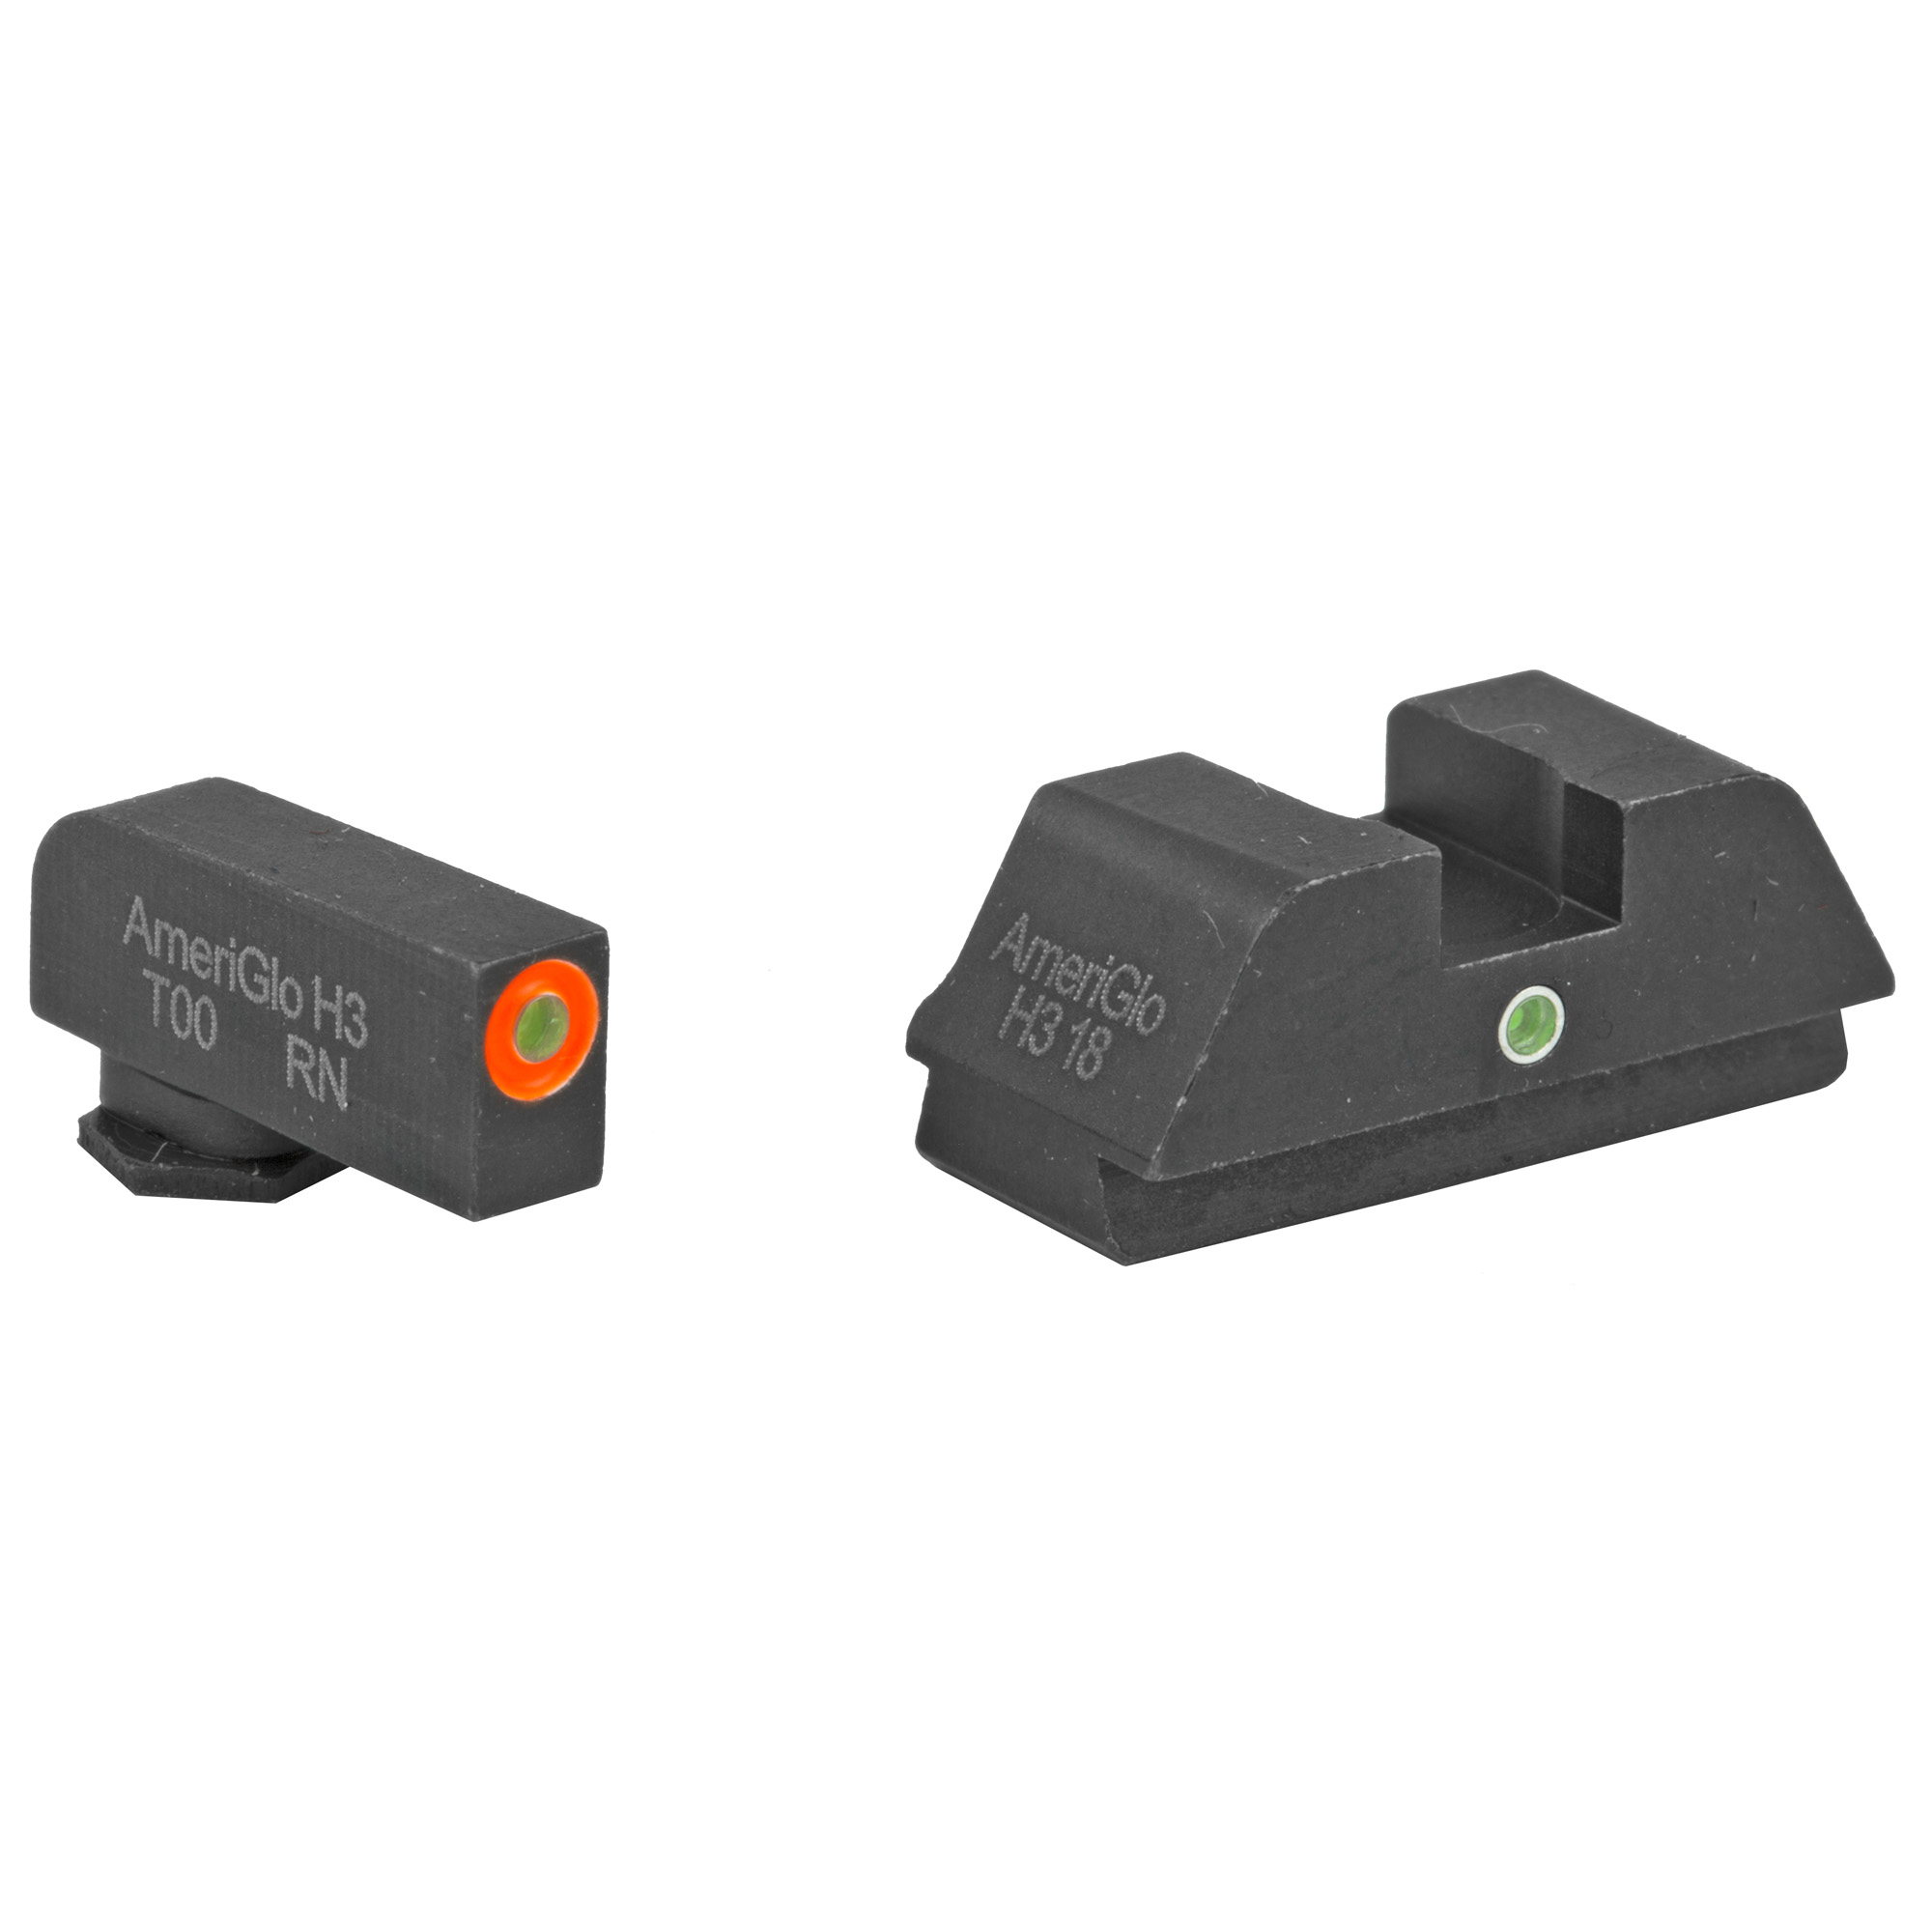 Ameriglo Tritium I-Dot Sight Set GLOCK 42/43 Green Tritium Front With Orange Outline Green Tritium Rear With Square Notch Steel Matte Black